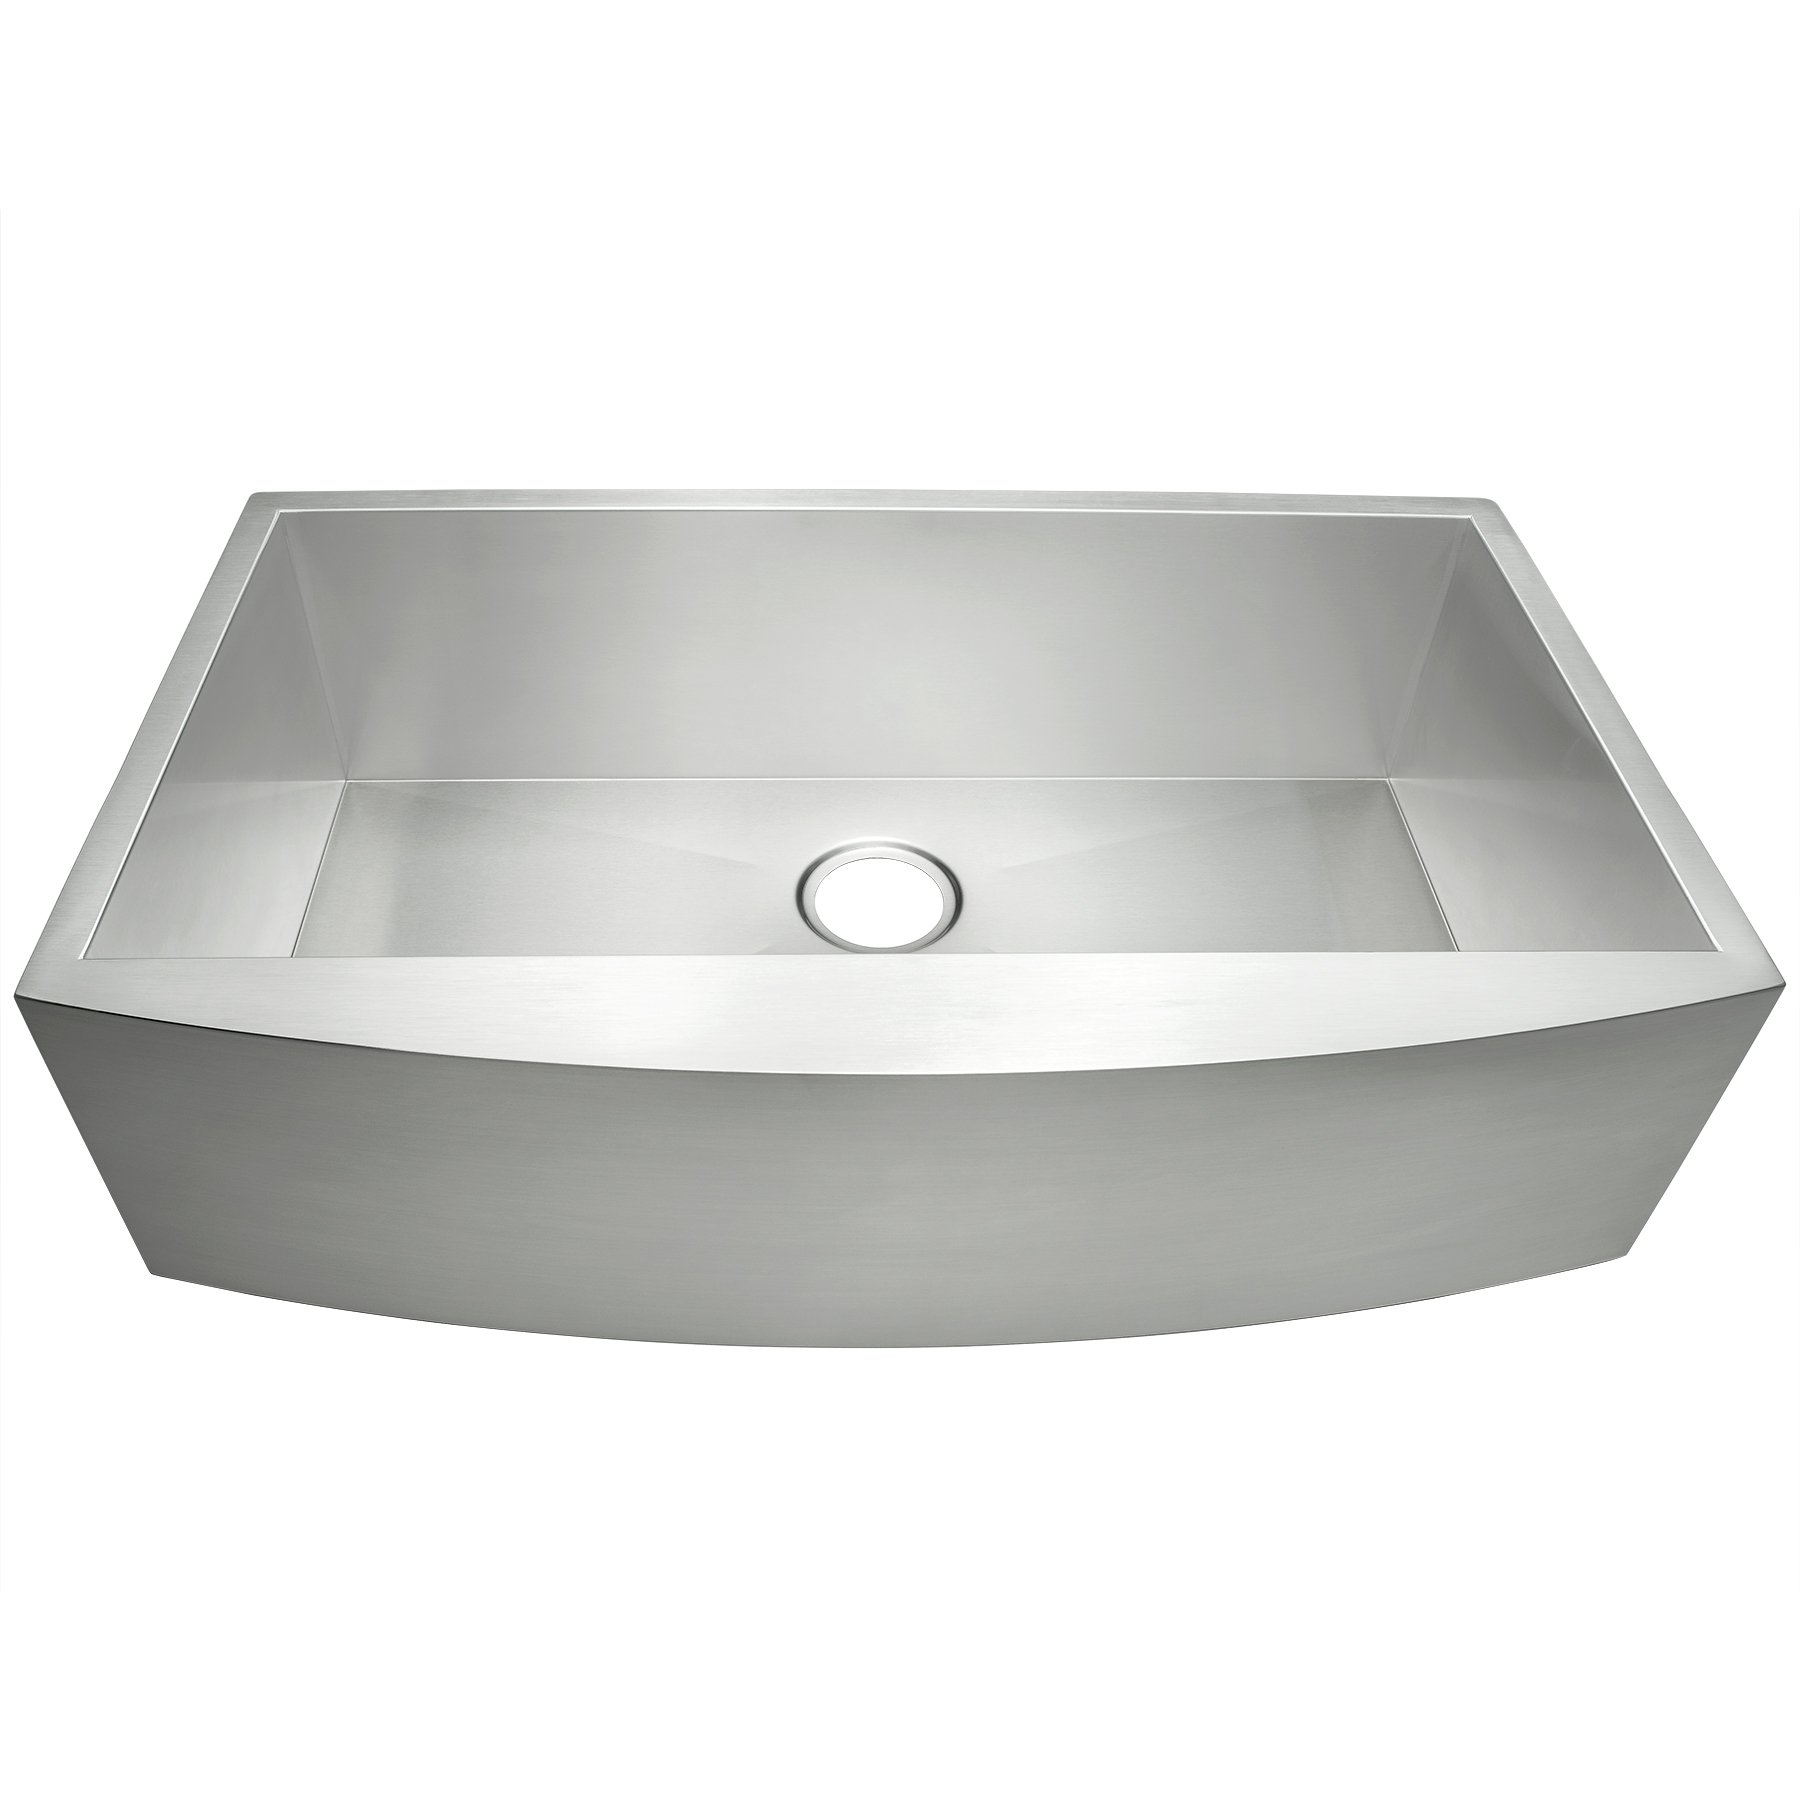 Golden Vantage 33'' Undermount Apron Zero Radius 16 Gauge Curved Front Stainless Steel Zero Radius Kitchen Sink (Single Bowl) by Golden Vantage